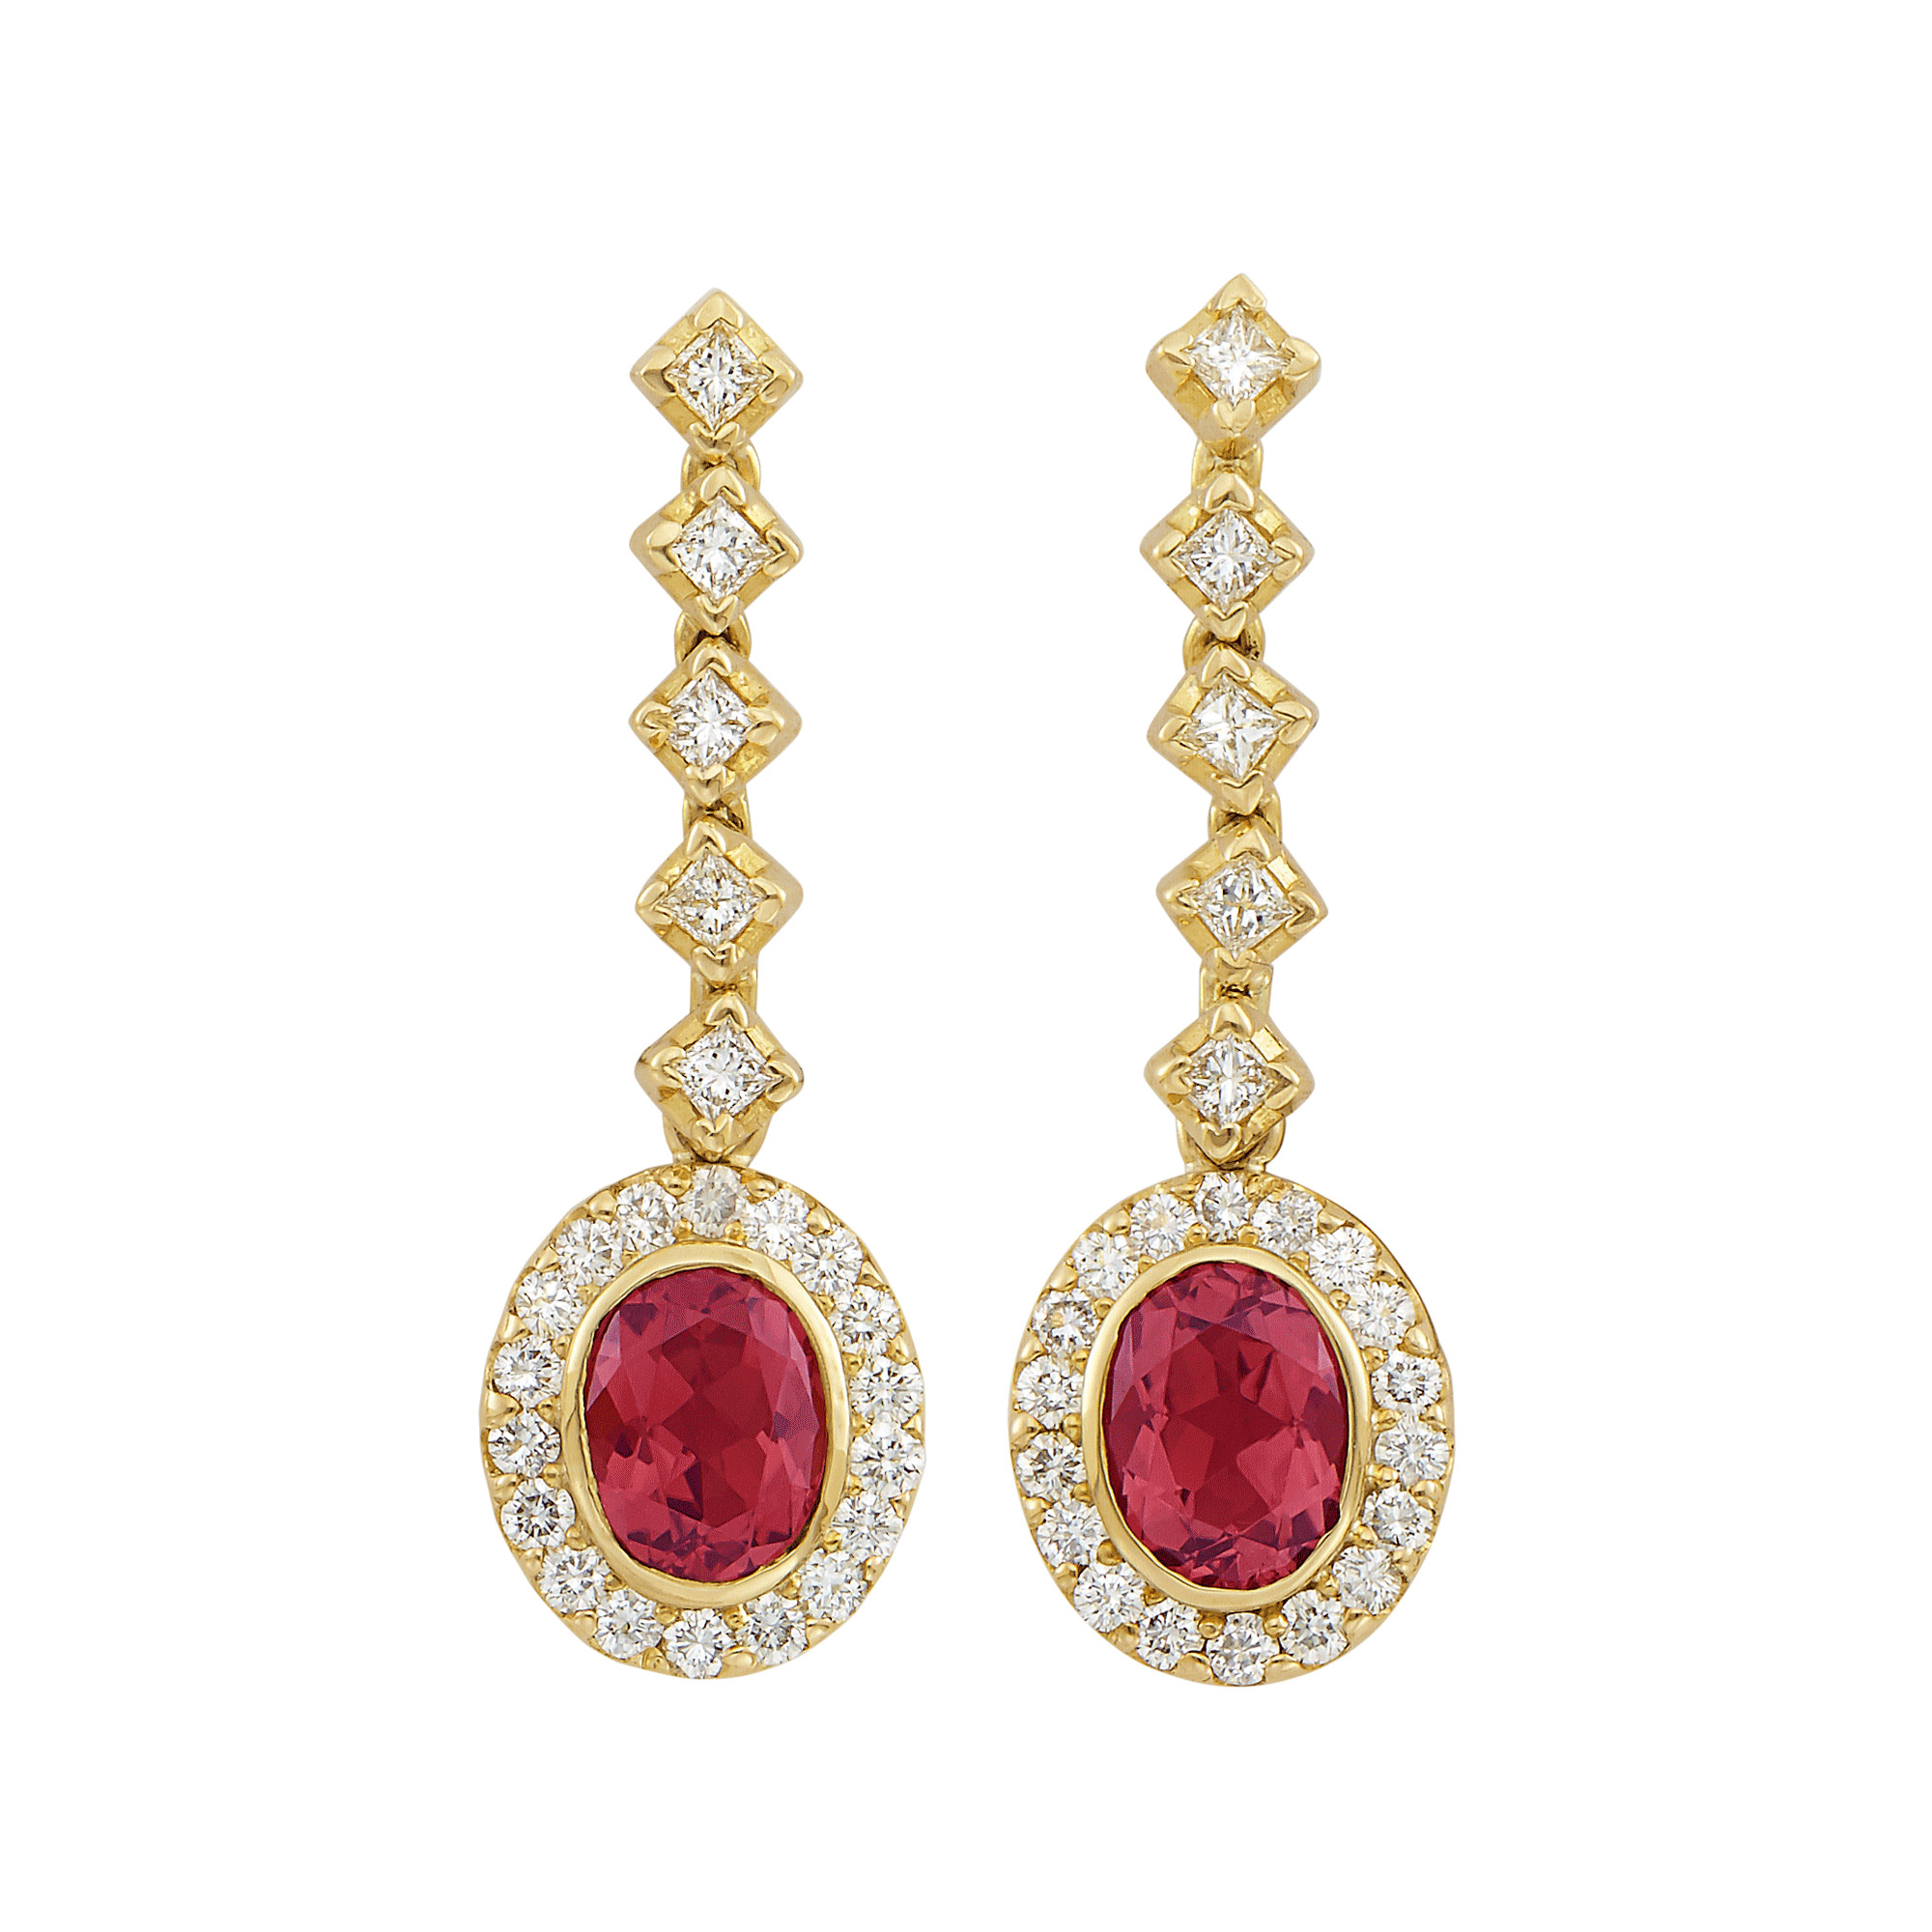 Lot image - Pair of Gold, Pink Tourmaline and Diamond Pendant-Earrings